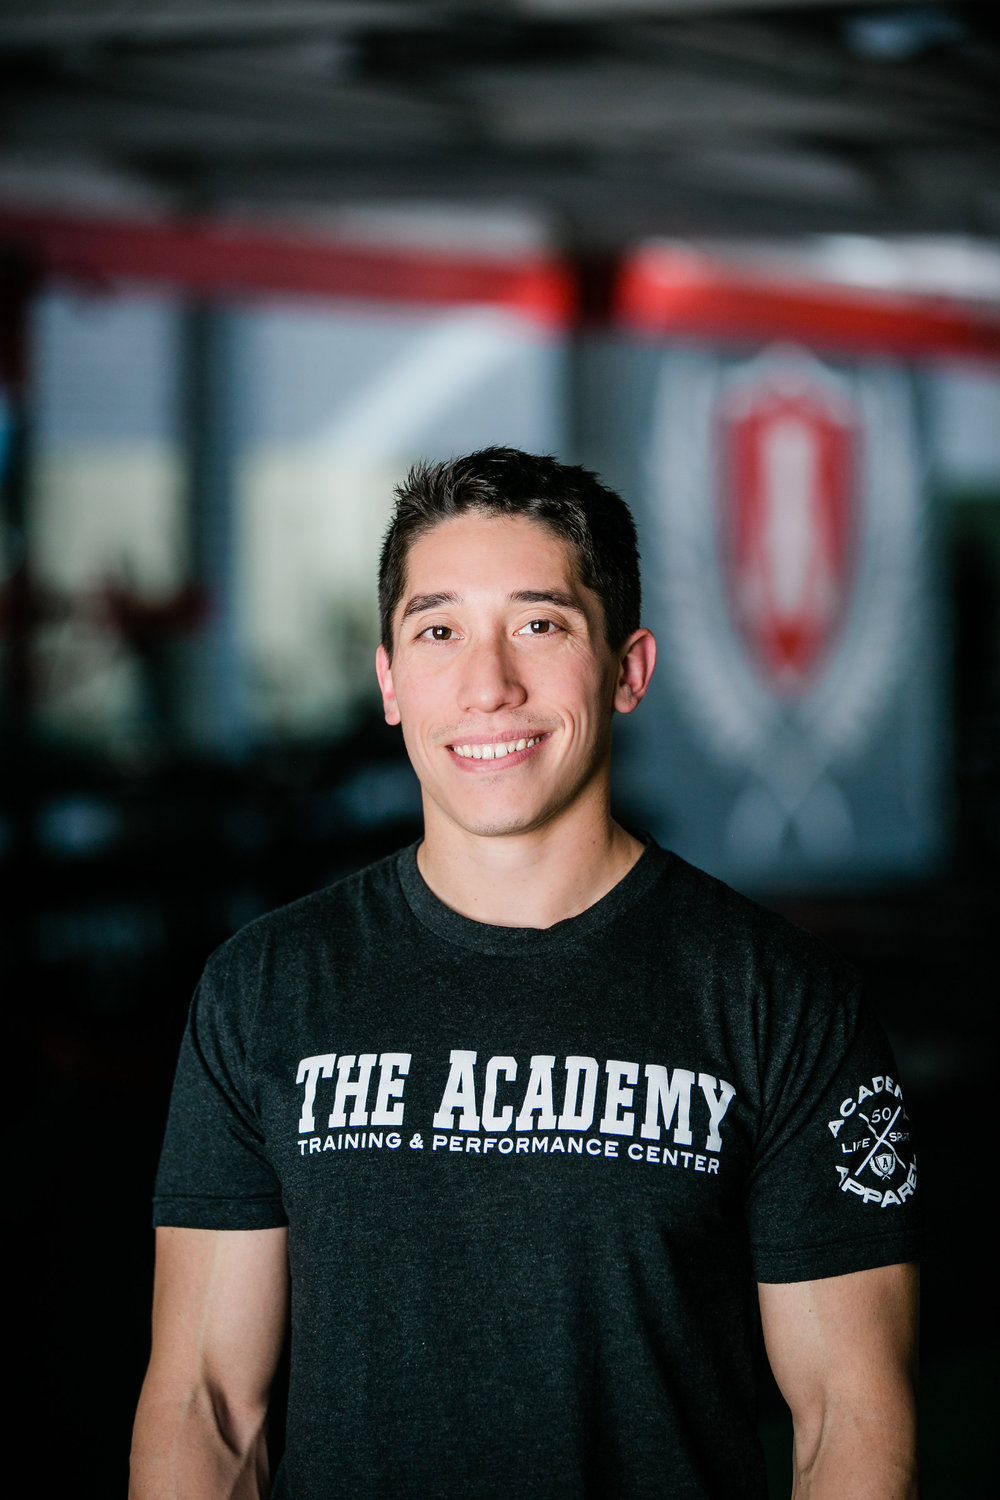 Christian Ampania - Christian specializes in sustainable, habit-based fitness coaching to help clients get leaner, get stronger, and live life more on their terms.He was voted ClassPass' Fitness Instructor of the Year in Sacramento in 2017.Education:- National Personal Training Institute Graduate- National Academy of Sports Medicine Certified Personal Trainer- Precision Nutrition Certified Coach (L1)- Online Training Academy Graduate- Onnit Academy Foundations Certified Trainer